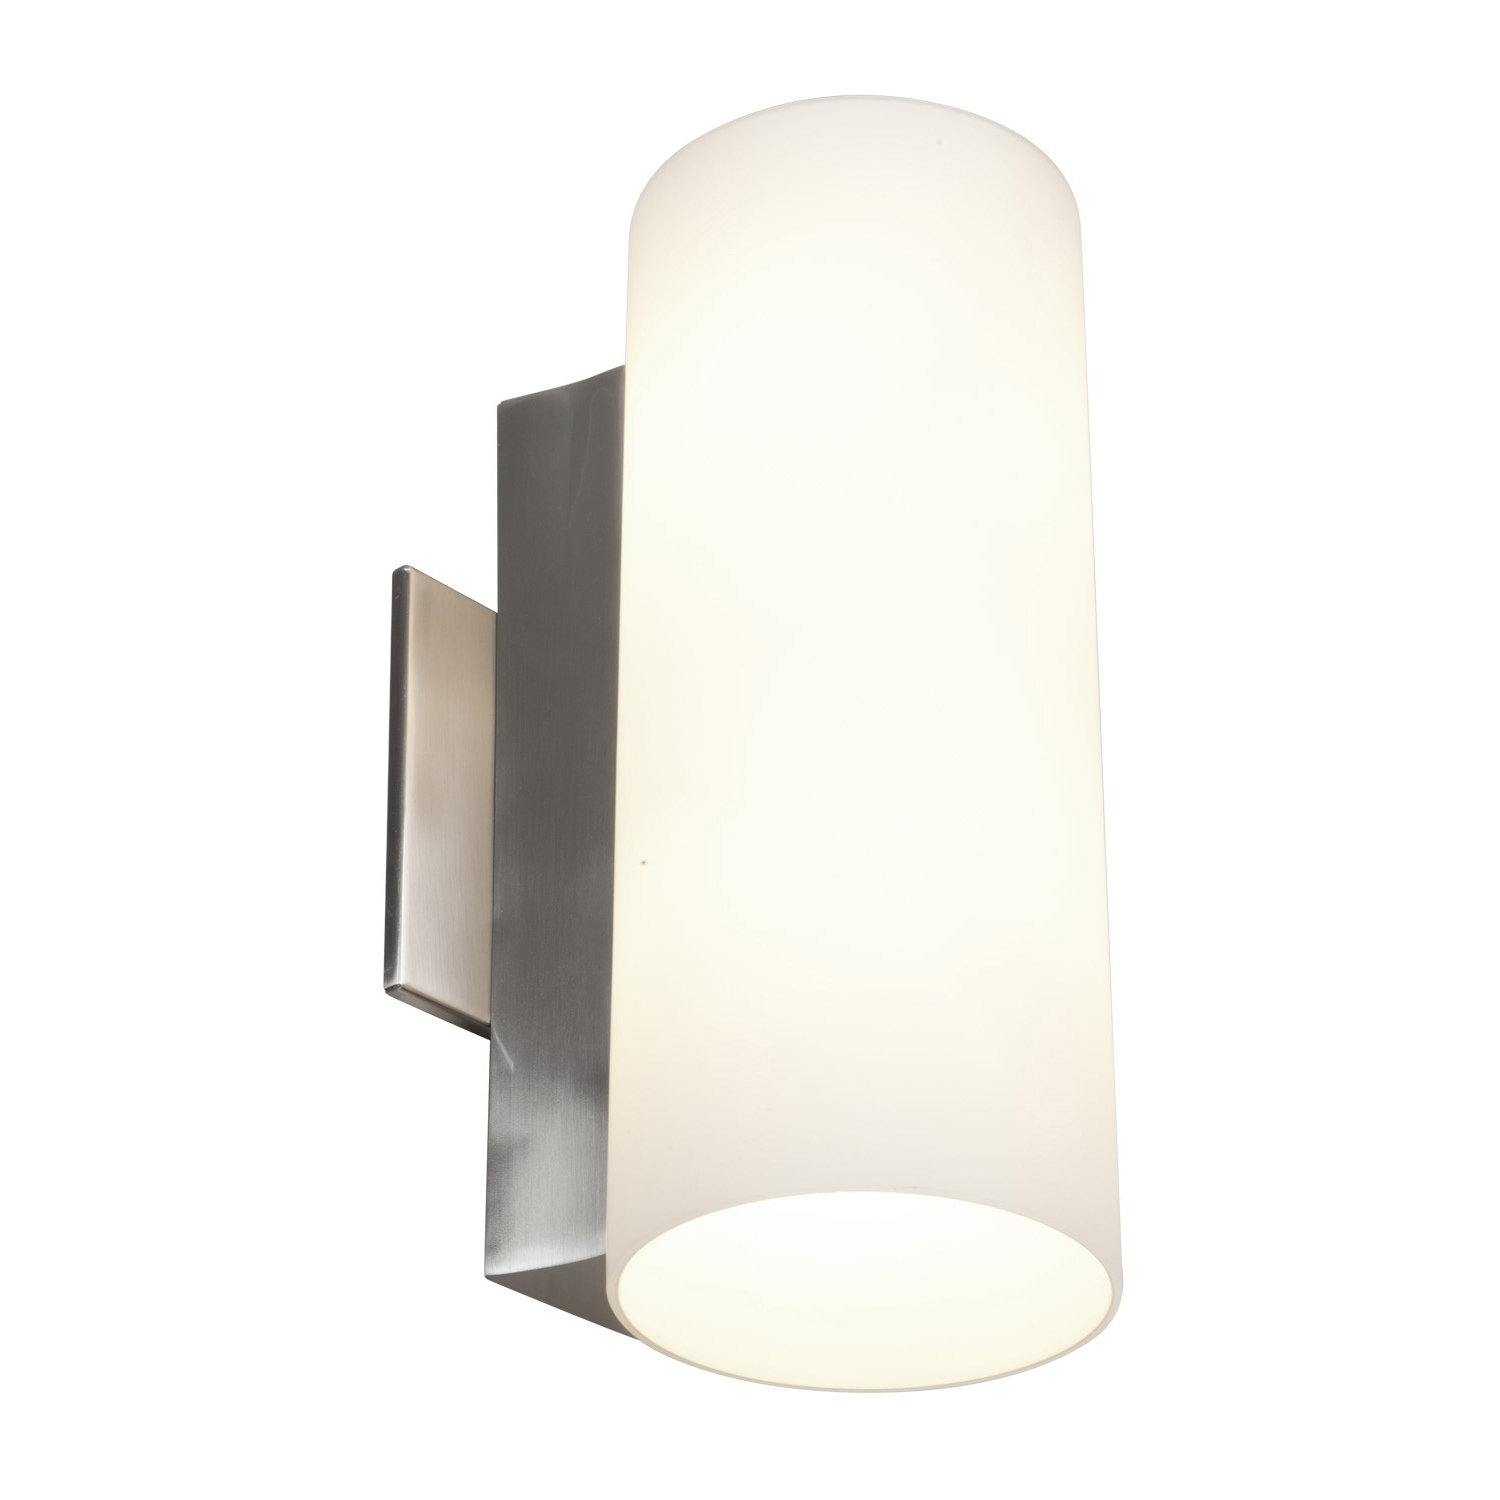 Stainless Steel Wall Mounted Sconce Light Fixtures With White Lamp Pertaining To Cheap Outdoor Wall Lighting Fixtures (#14 of 15)